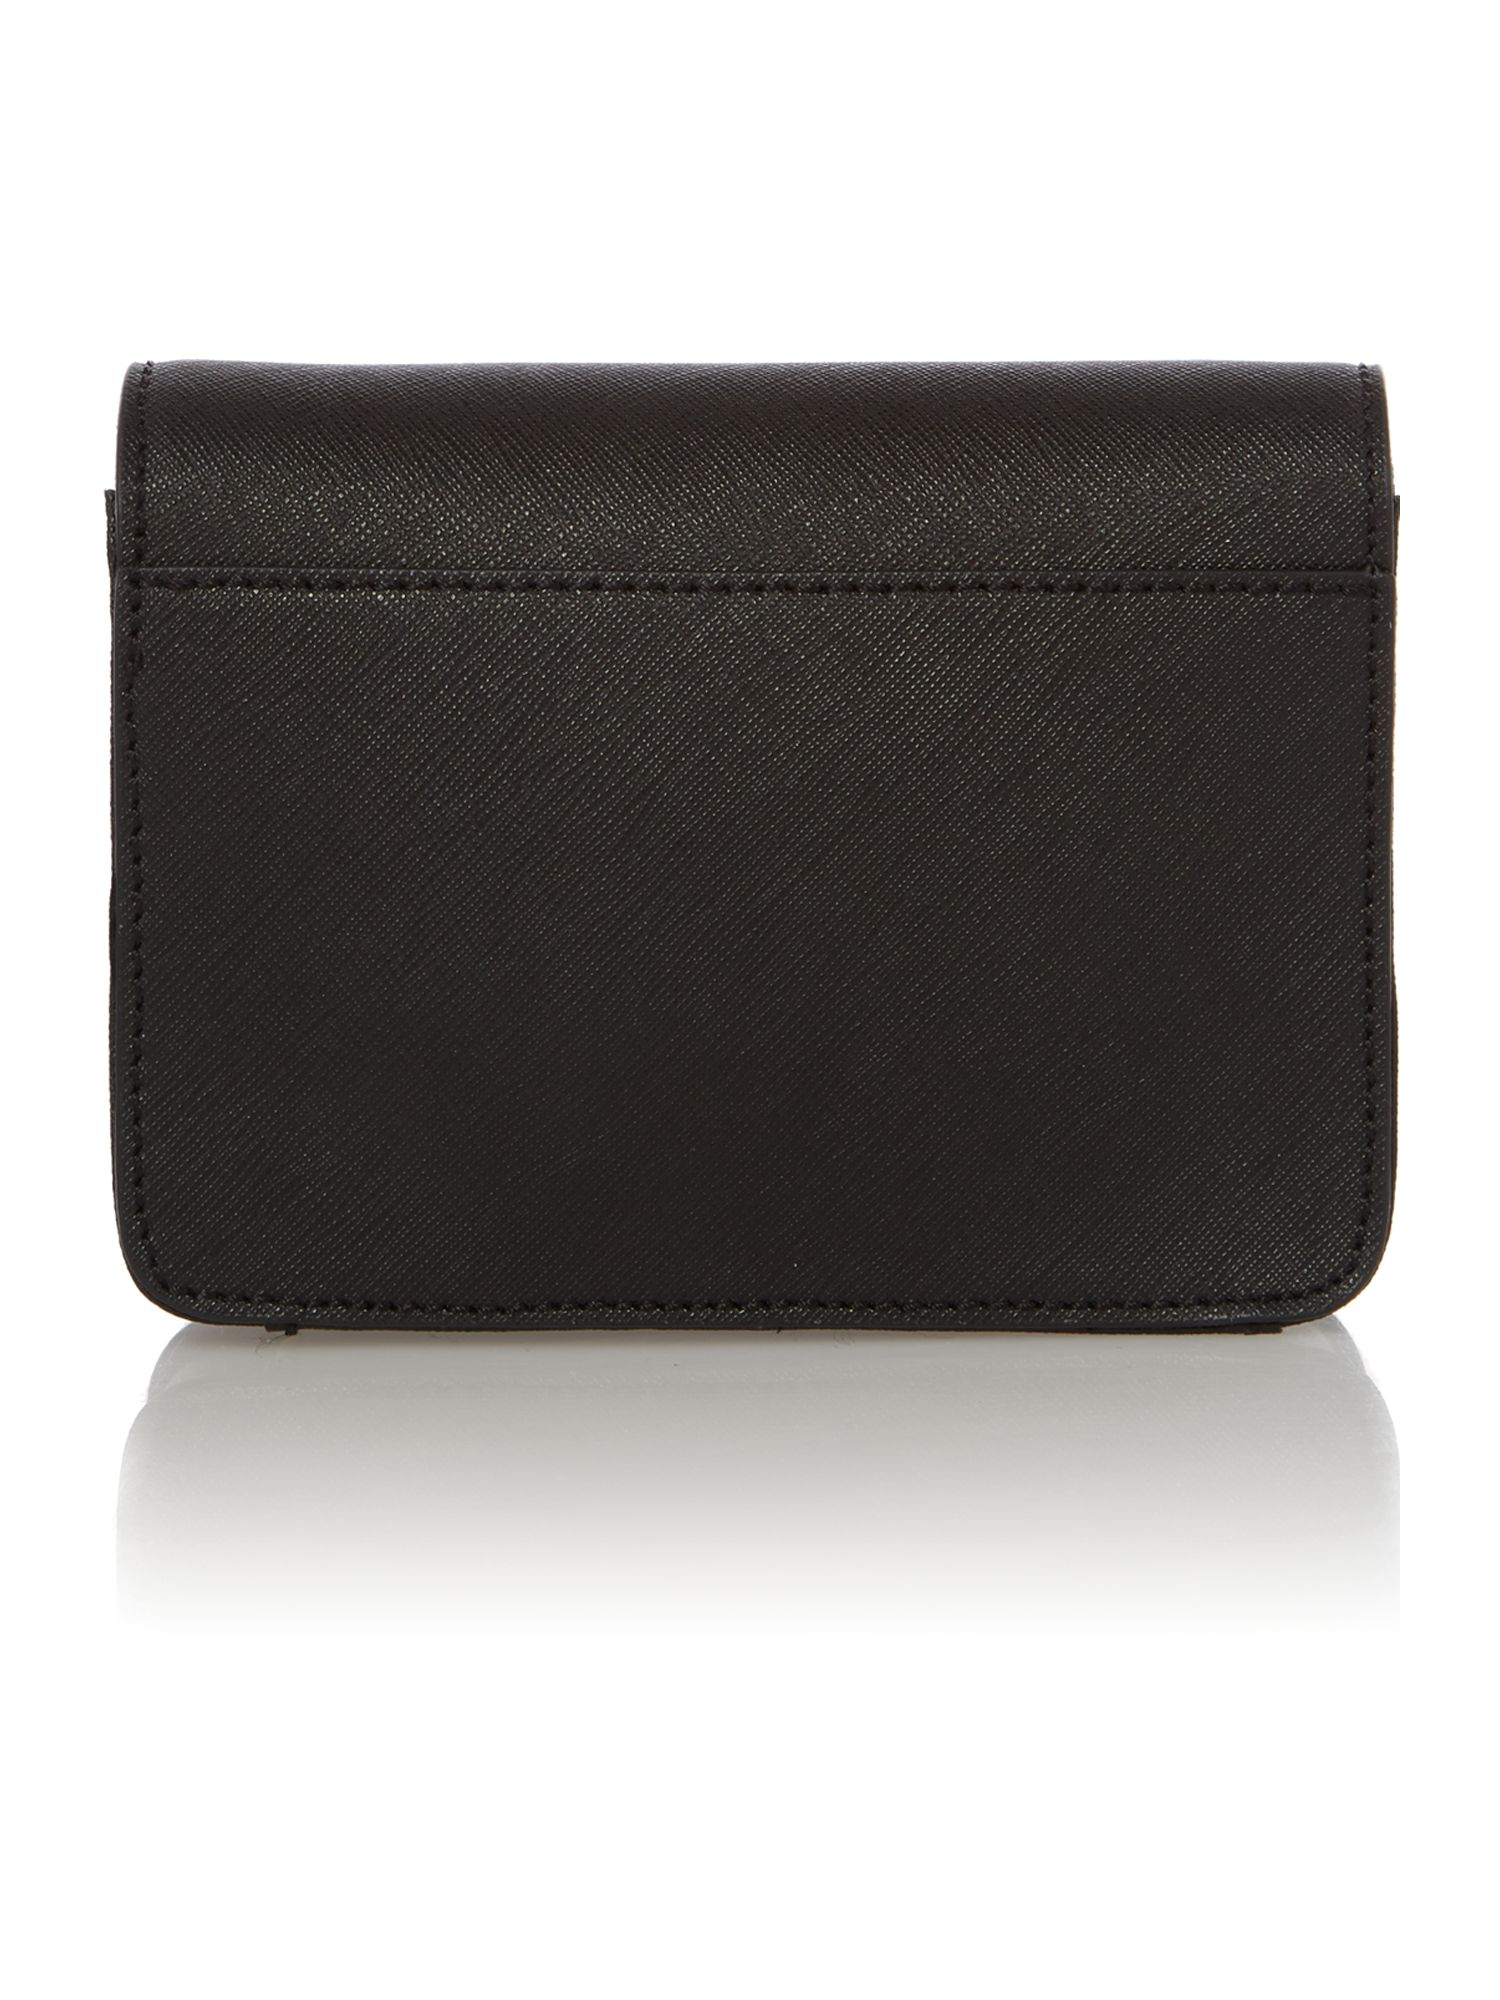 Saffiano black mini crossbody bag